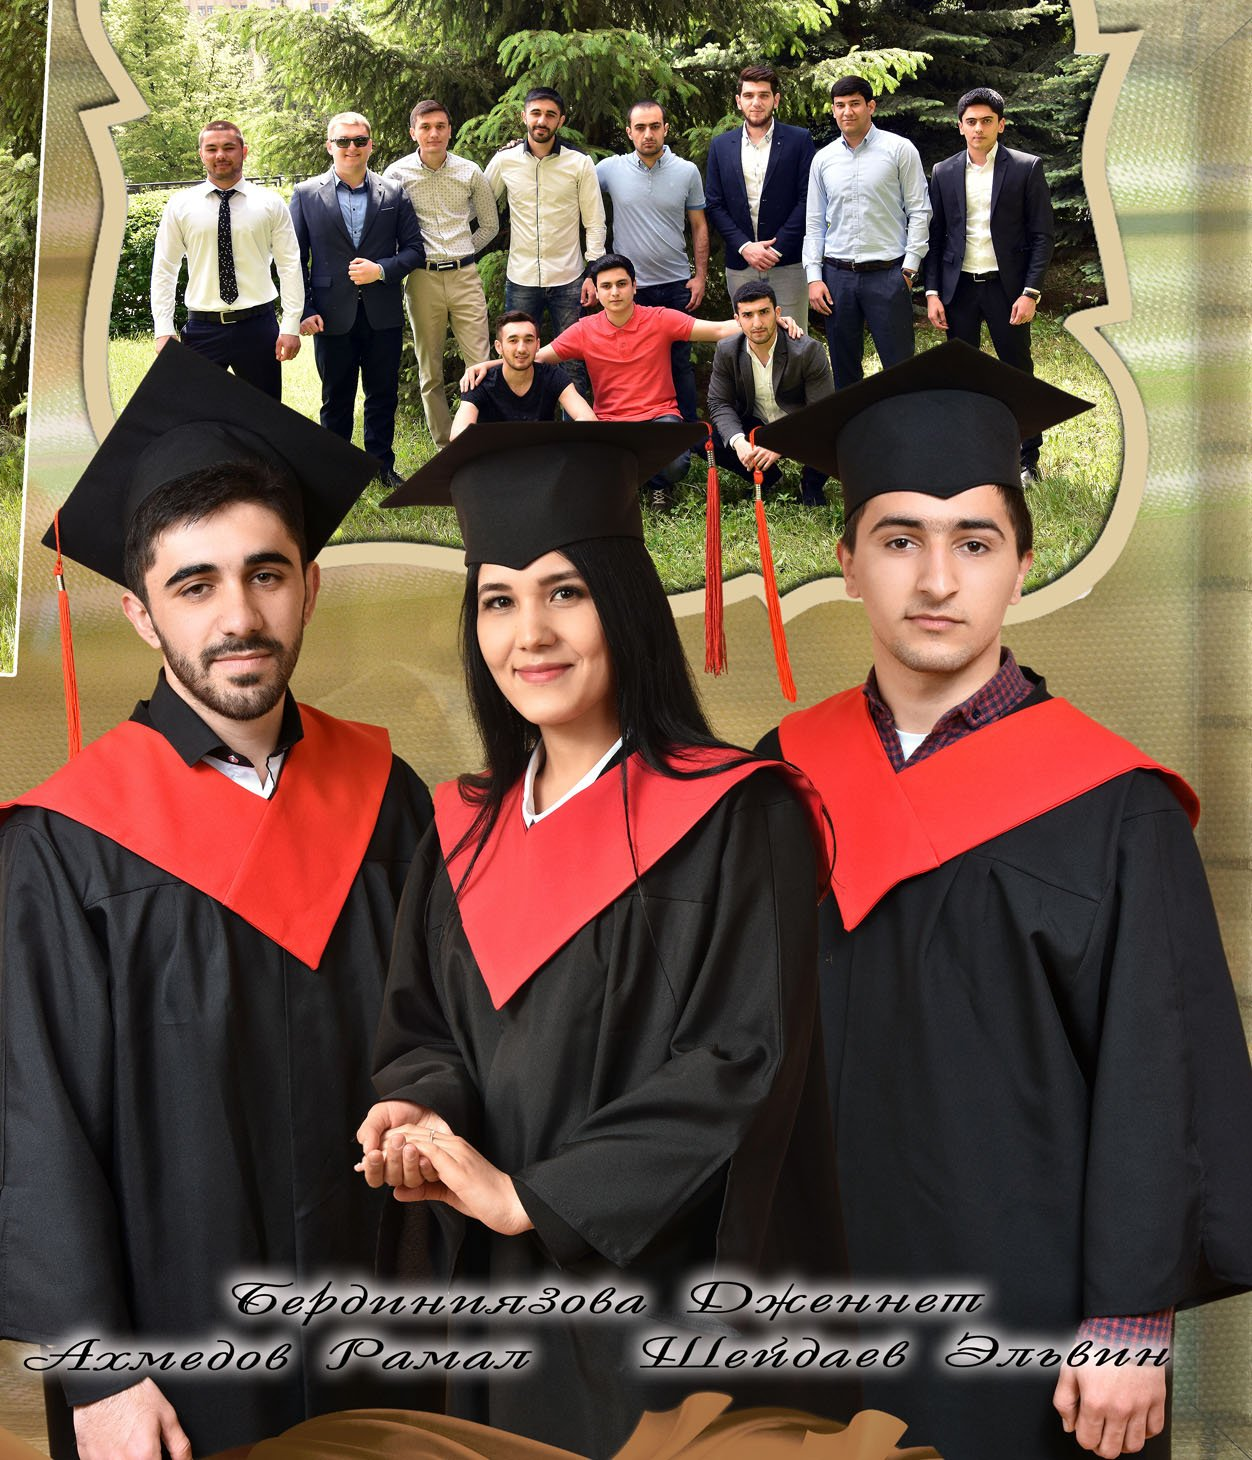 https://school-photo.com.ua/wp-content/uploads/2017/08/12-3.jpg